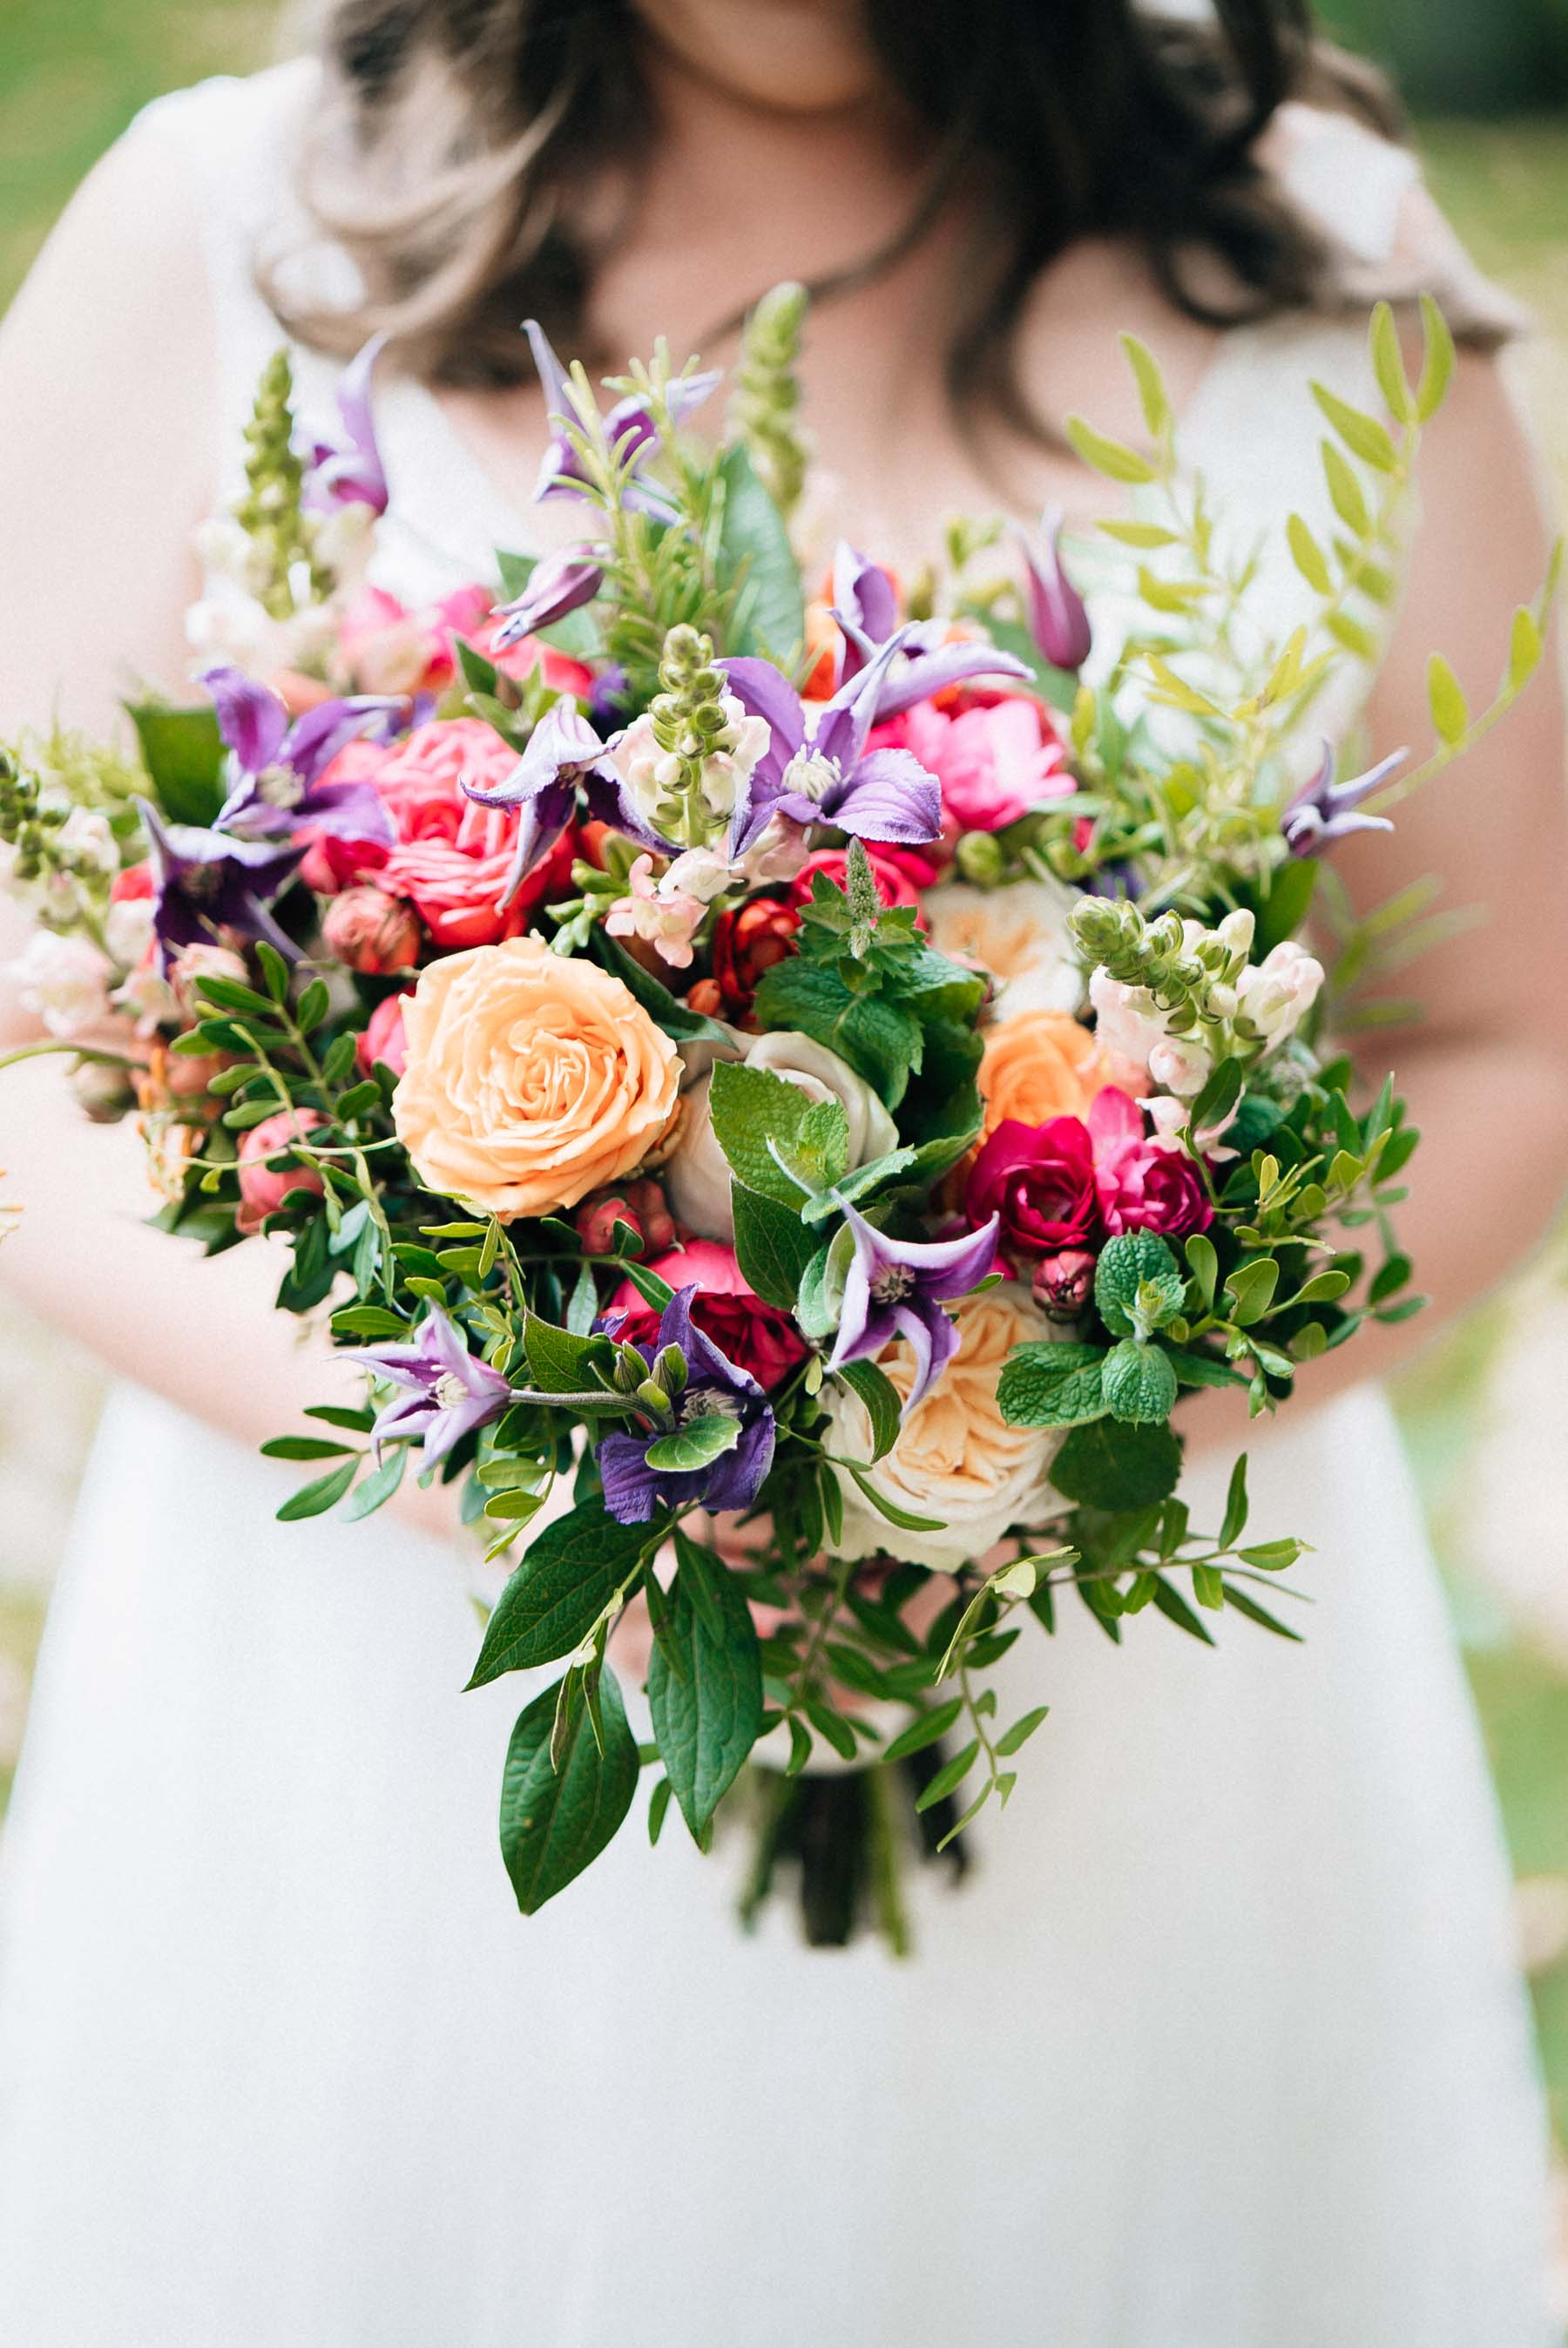 the wedding bouquet